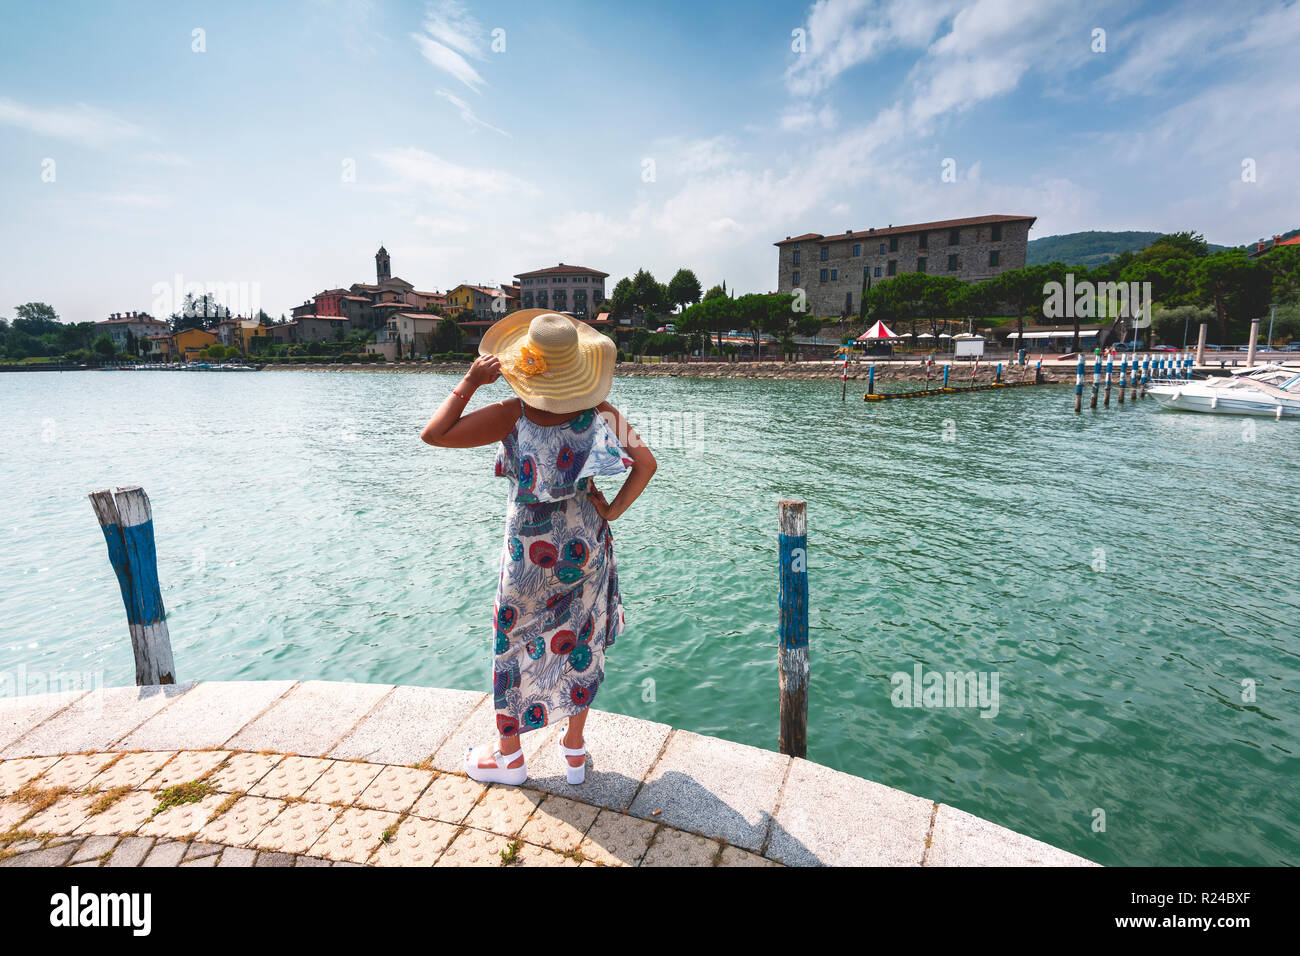 Woman admiring Clusane d'Iseo, Lake Iseo, Brescia province, Lombardy, Italy, Europe - Stock Image